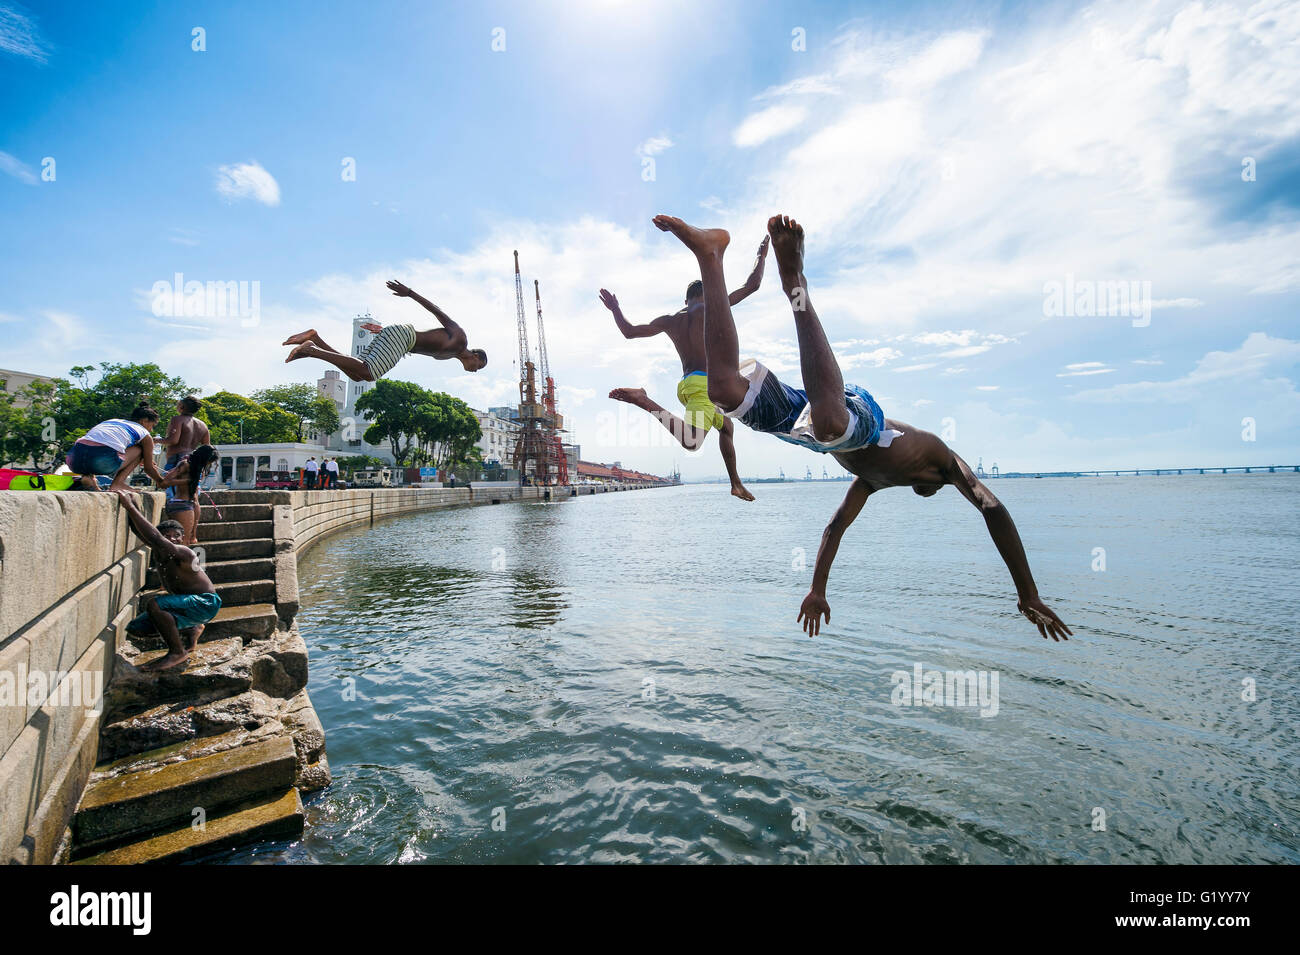 RIO DE JANEIRO - FEBRUARY 25, 2016: Young Brazilians jump into Guanabara Bay from a wall at Maua Plaza at Porto - Stock Image